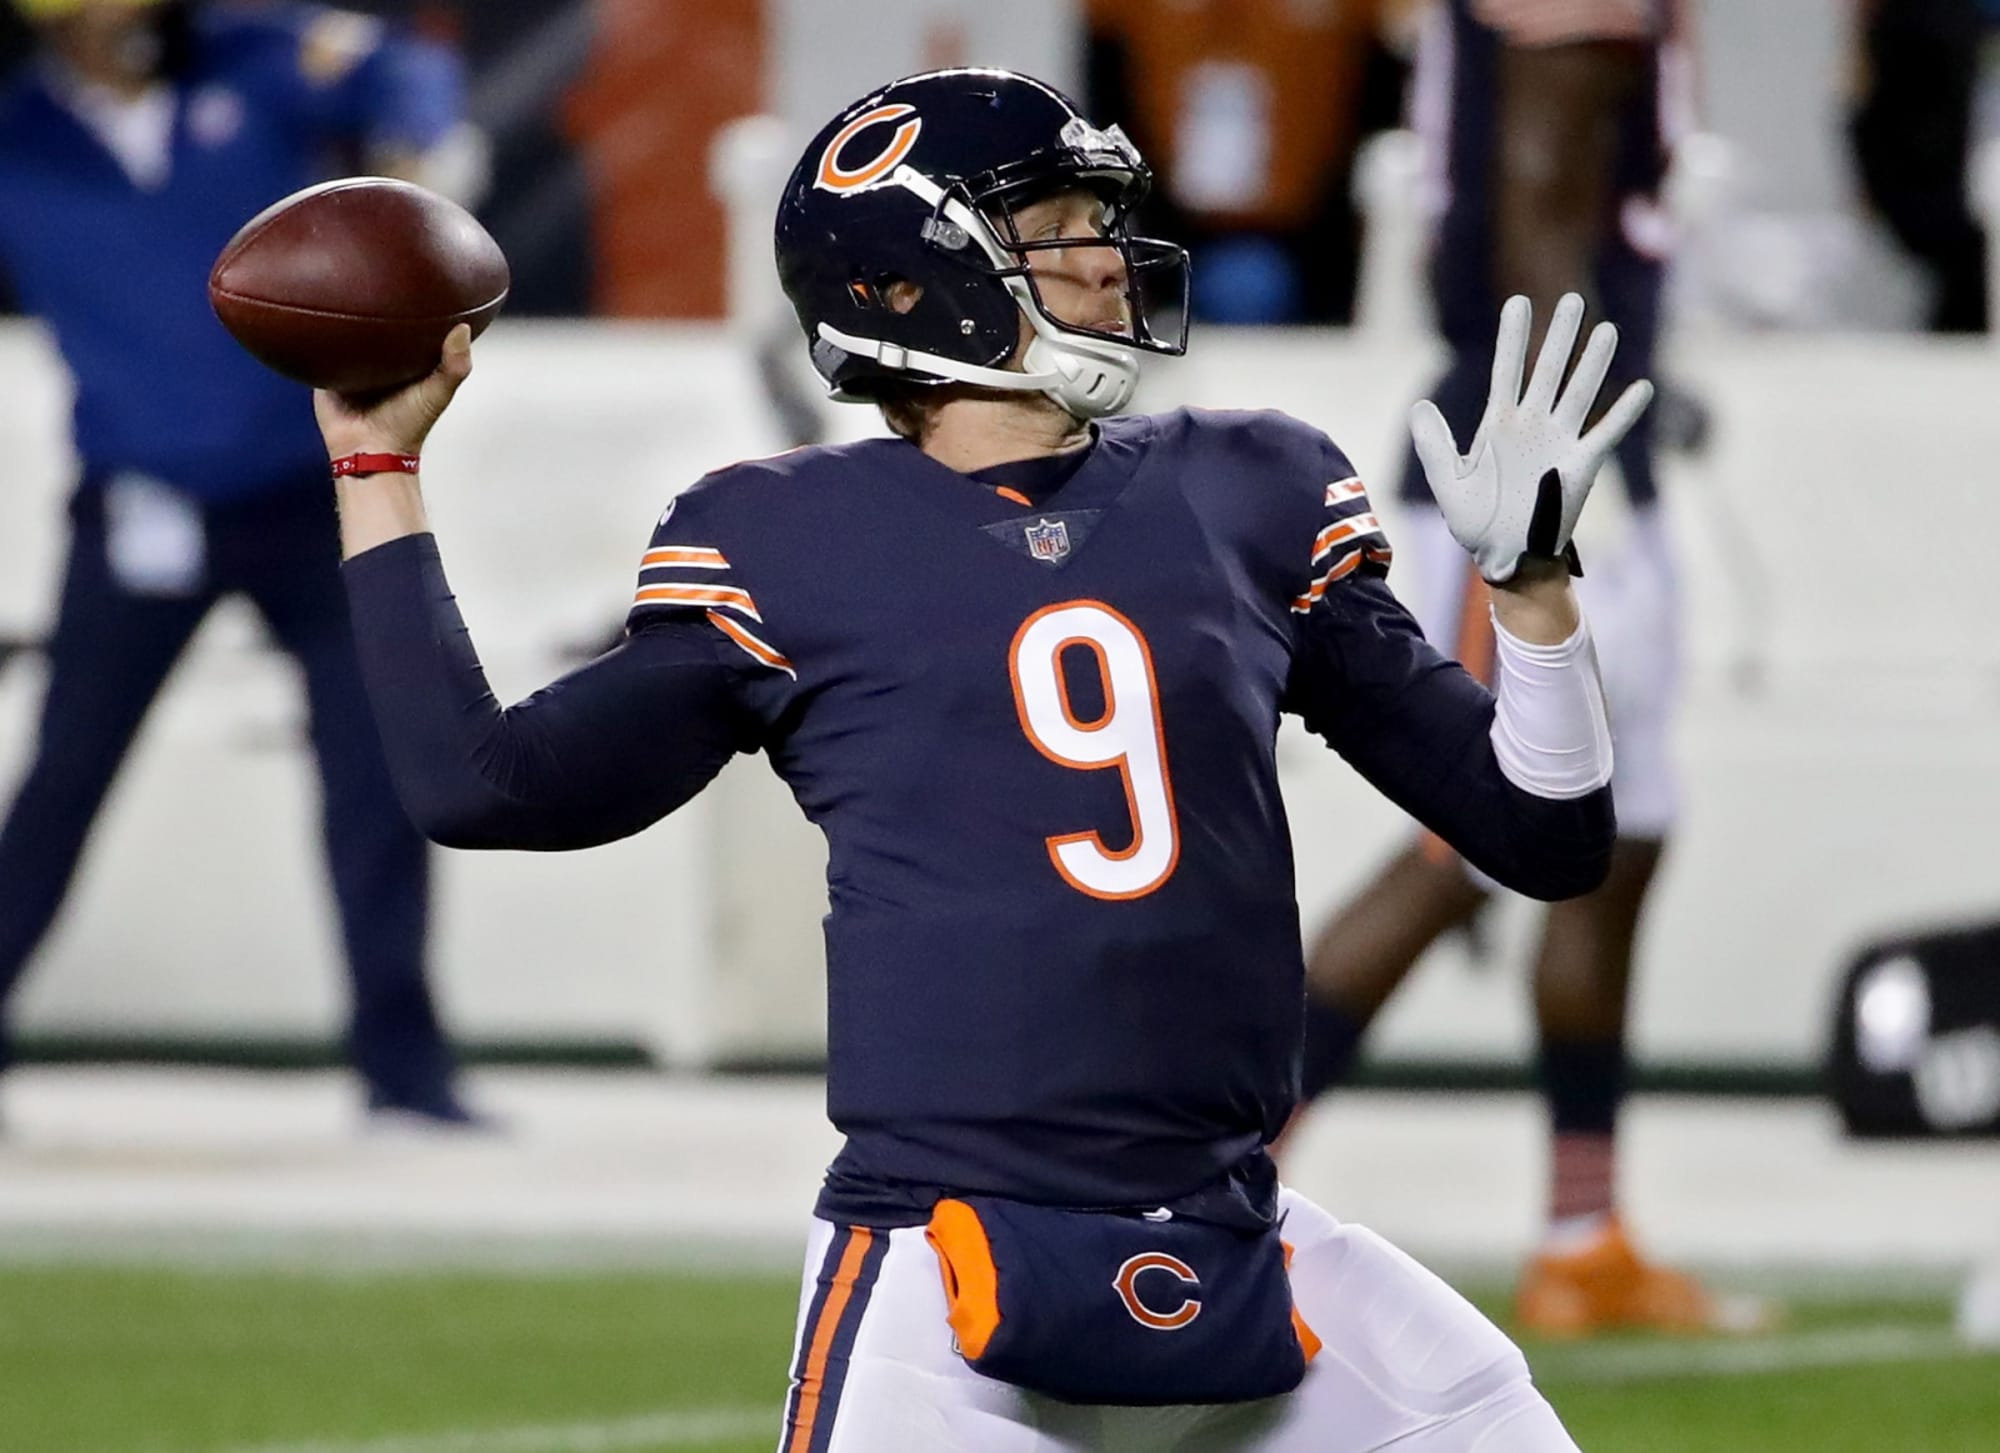 Listening to this Nick Foles praise is why the Bears are a threat to win NFC North